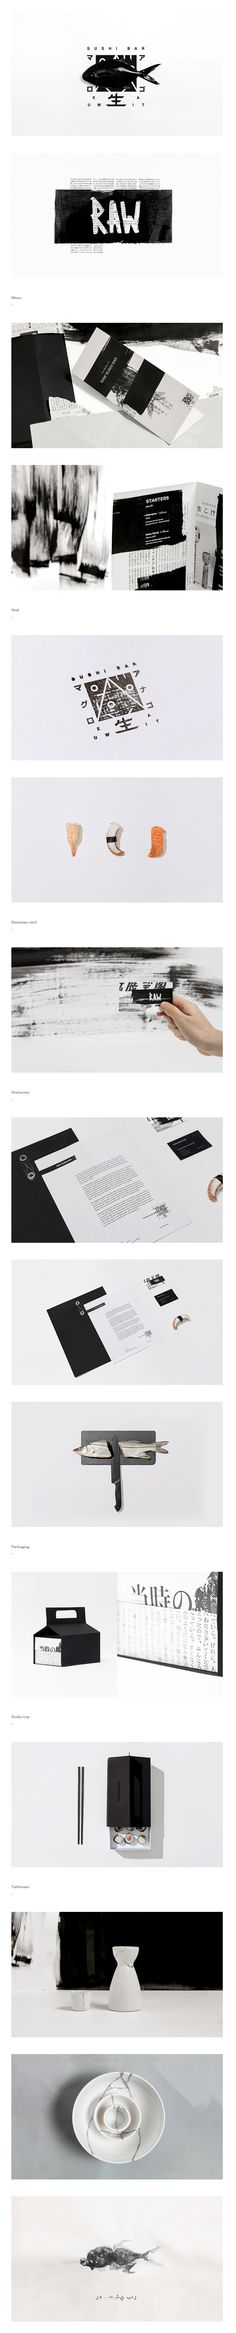 Sushi bar identity by Futura agency.